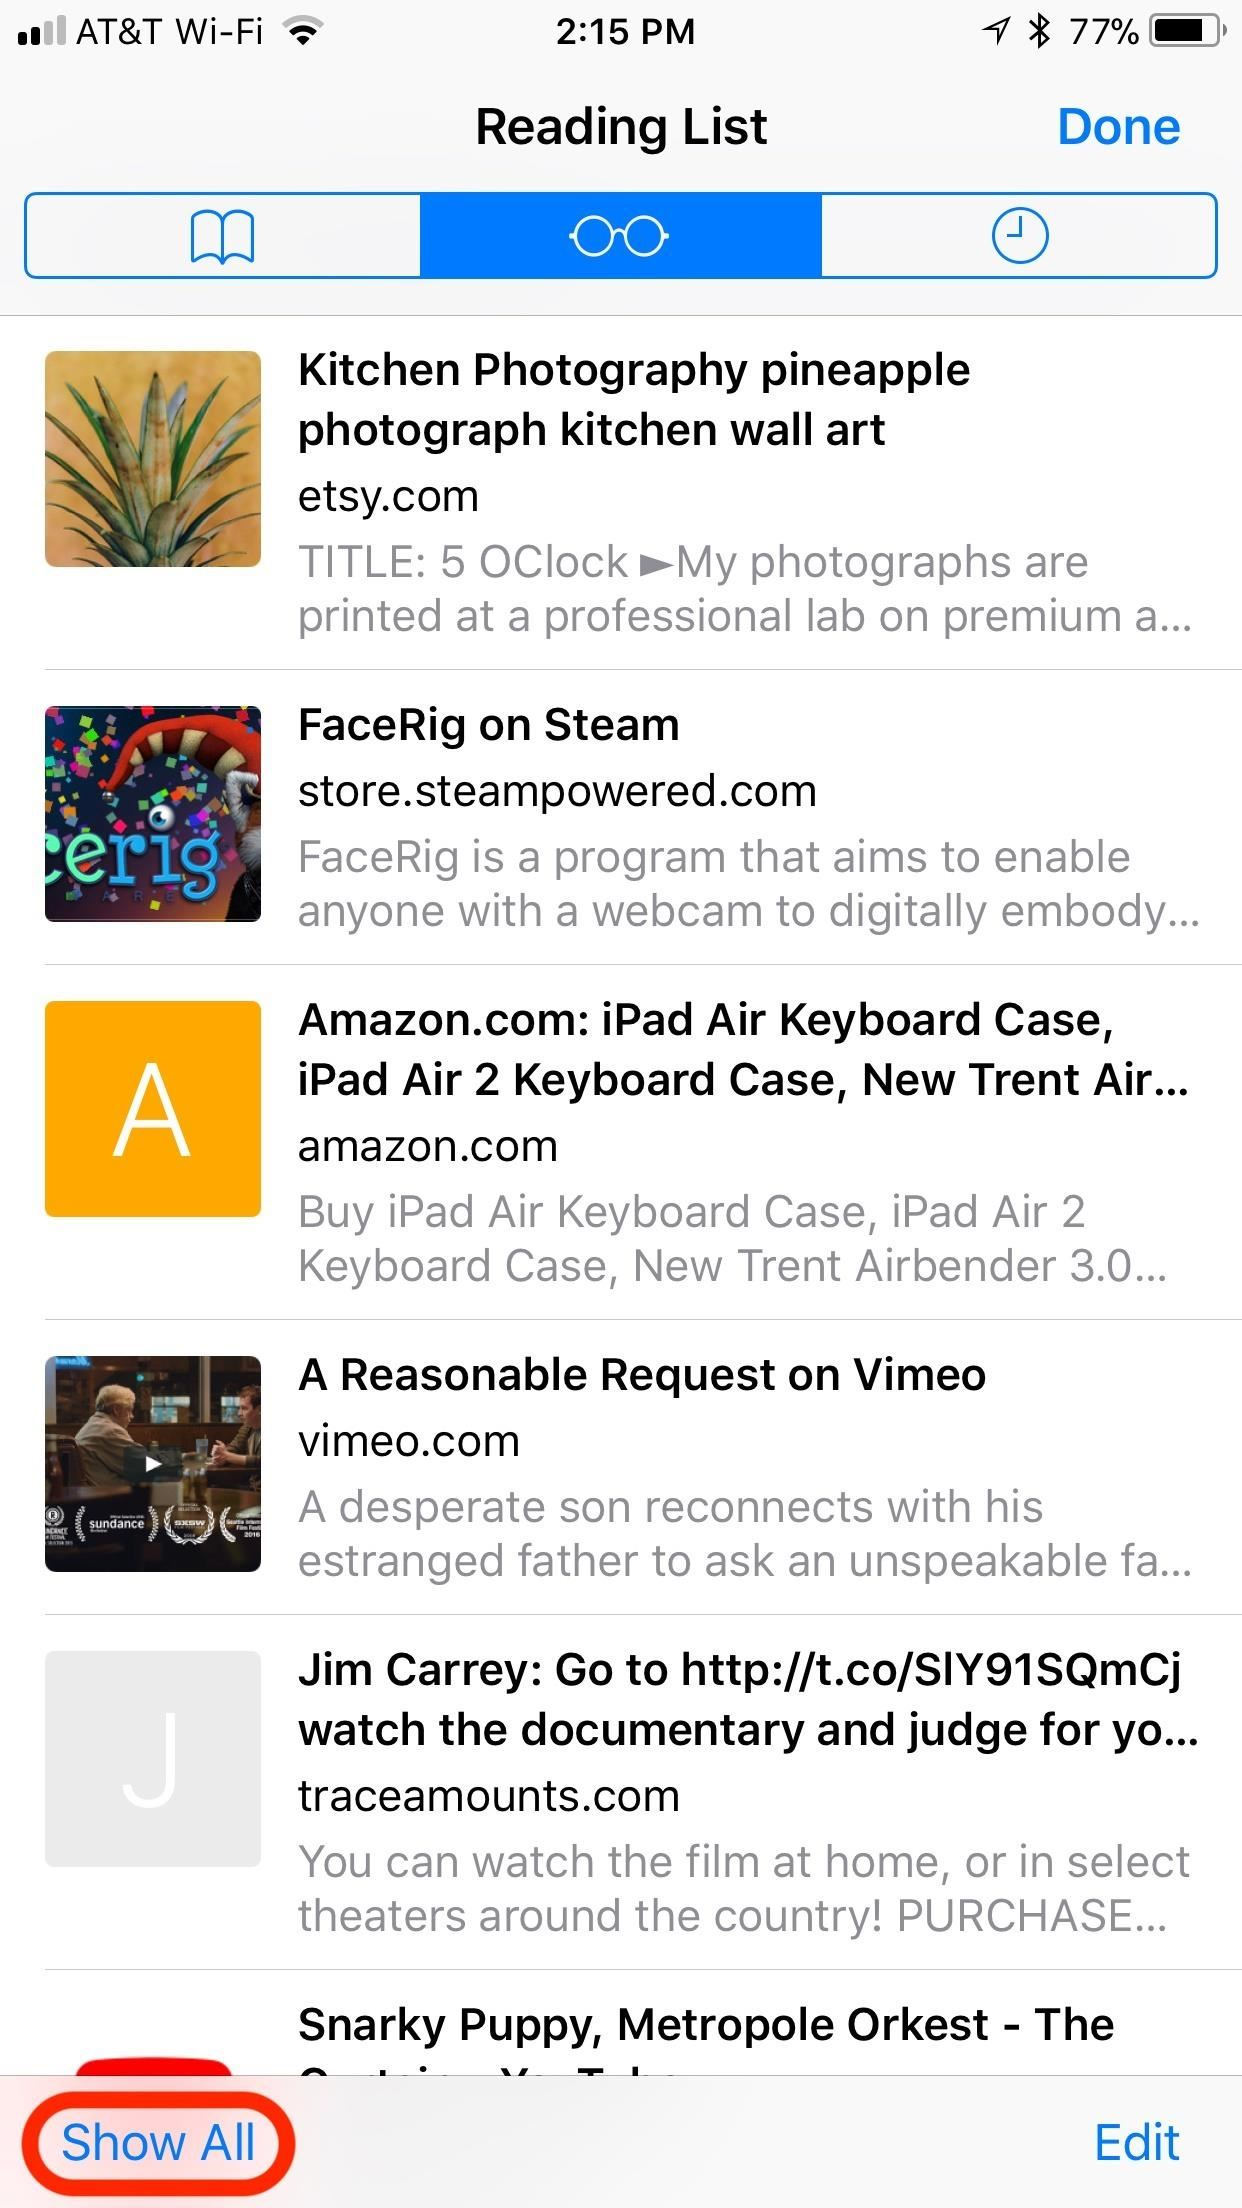 Safari 101: How to Use the Reading List to Save Articles, Videos & More for Later Viewing